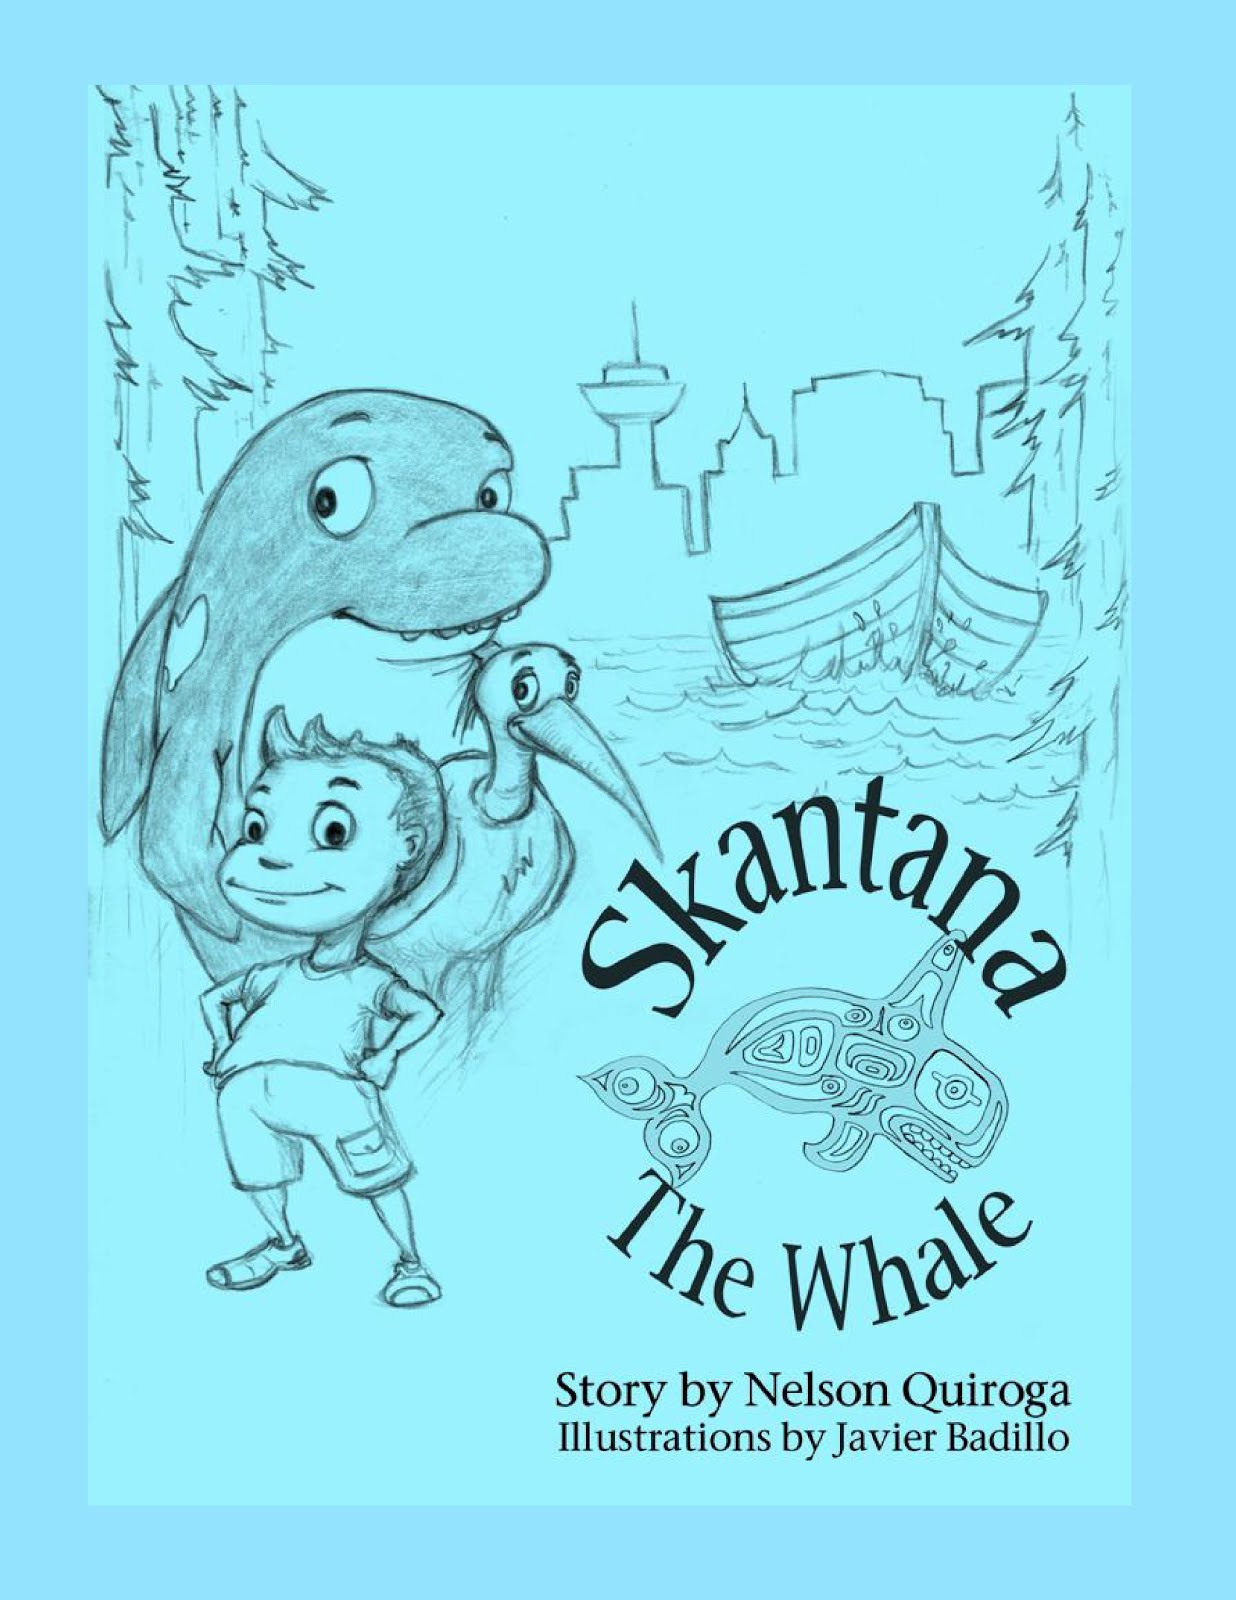 """Skantana The Whale"" by Nelson Quiroga available at Amazon Books"